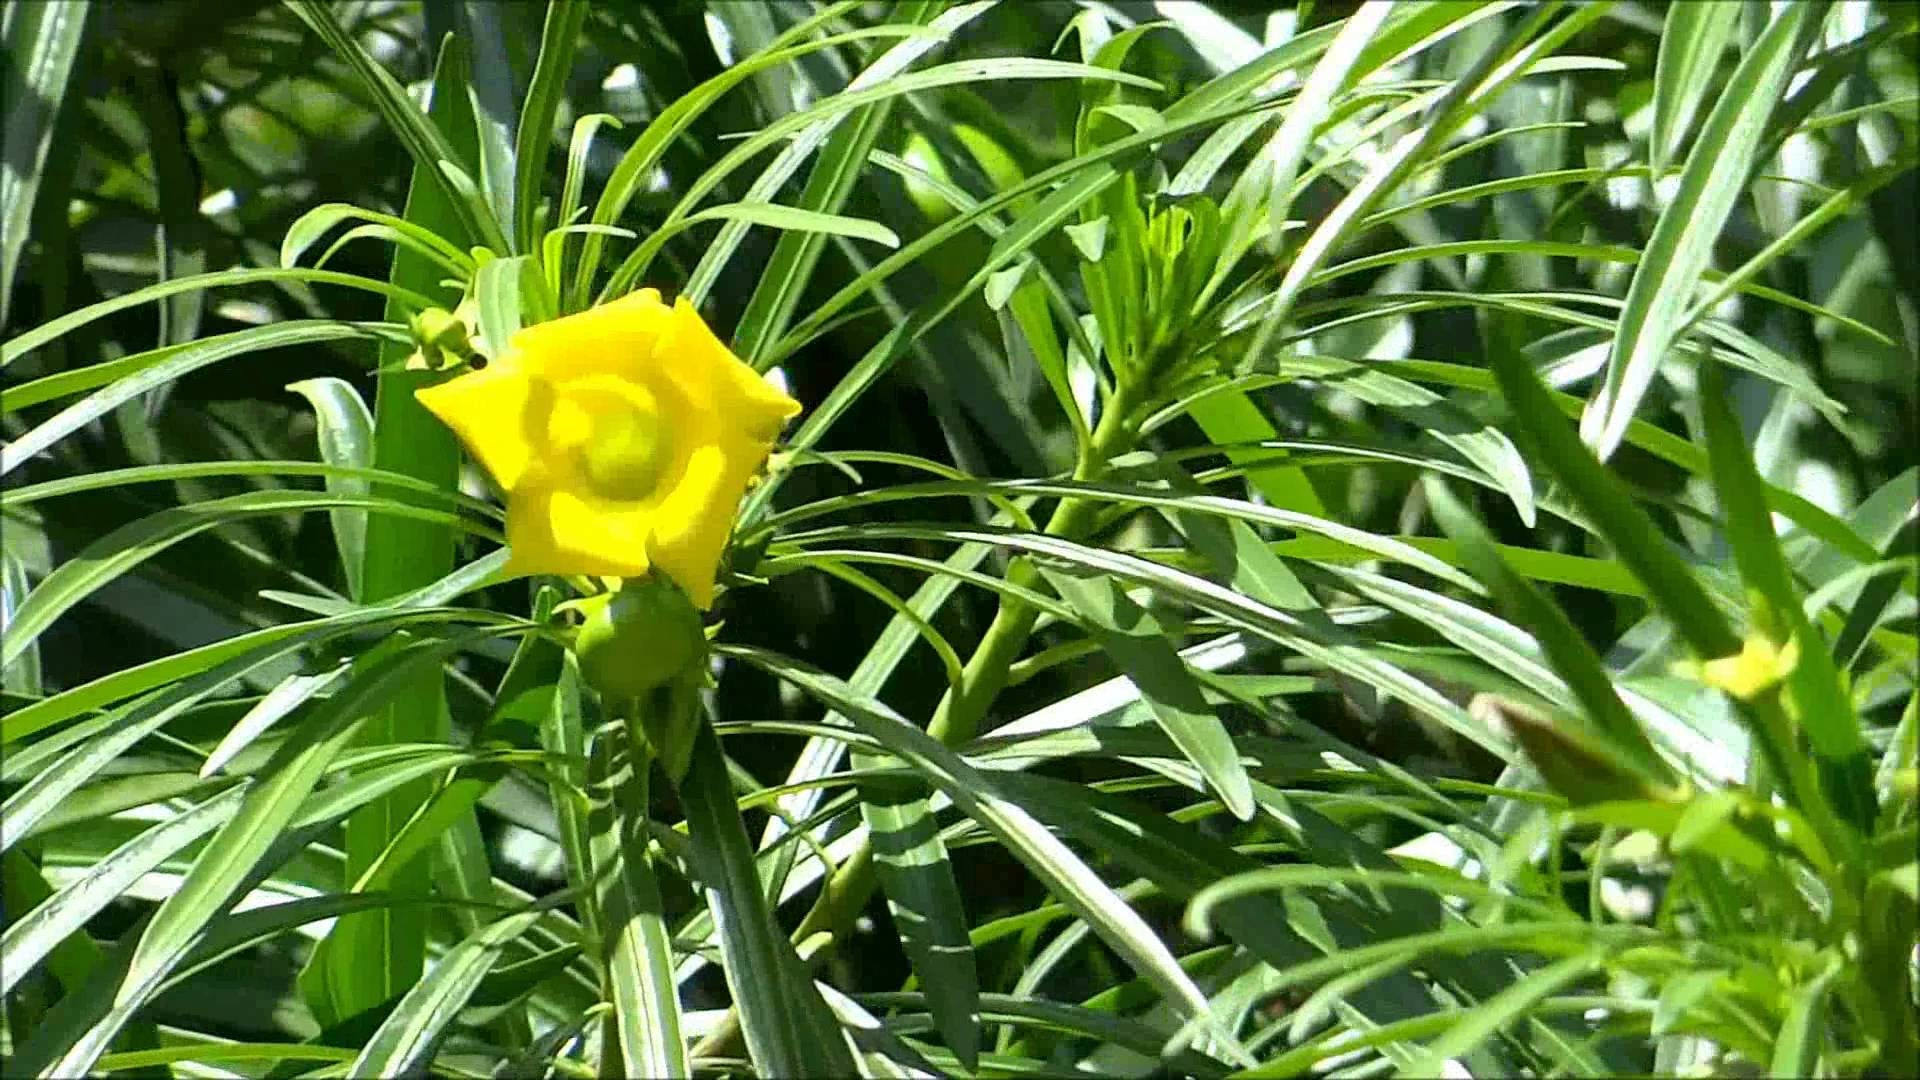 20 Thevetia Peruviana Mexican Oleander Tree Seeds Yellow Etsy